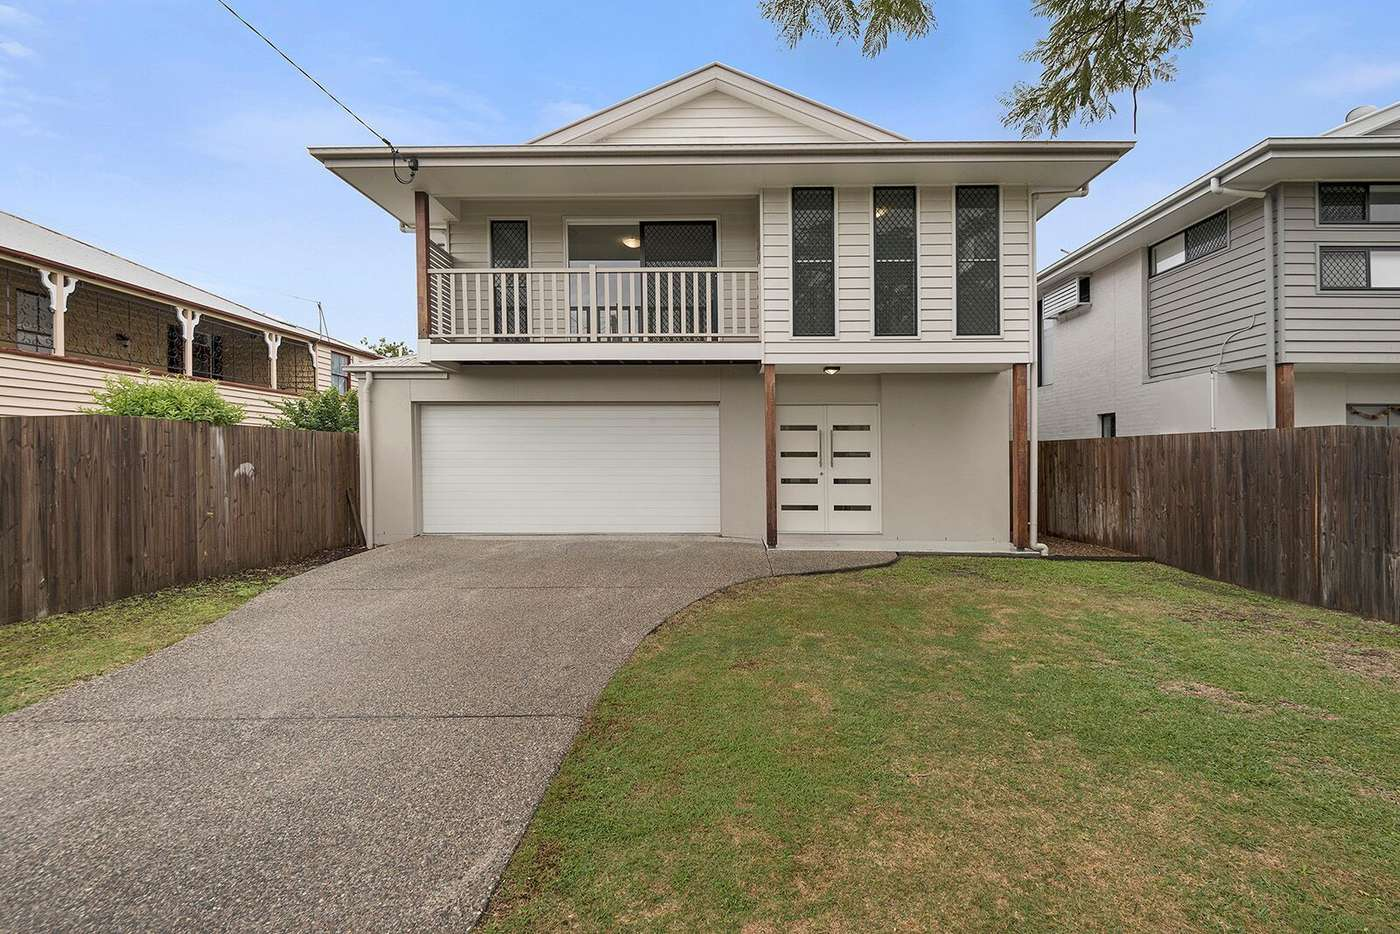 Main view of Homely house listing, 41 Lilley Street, Hendra QLD 4011